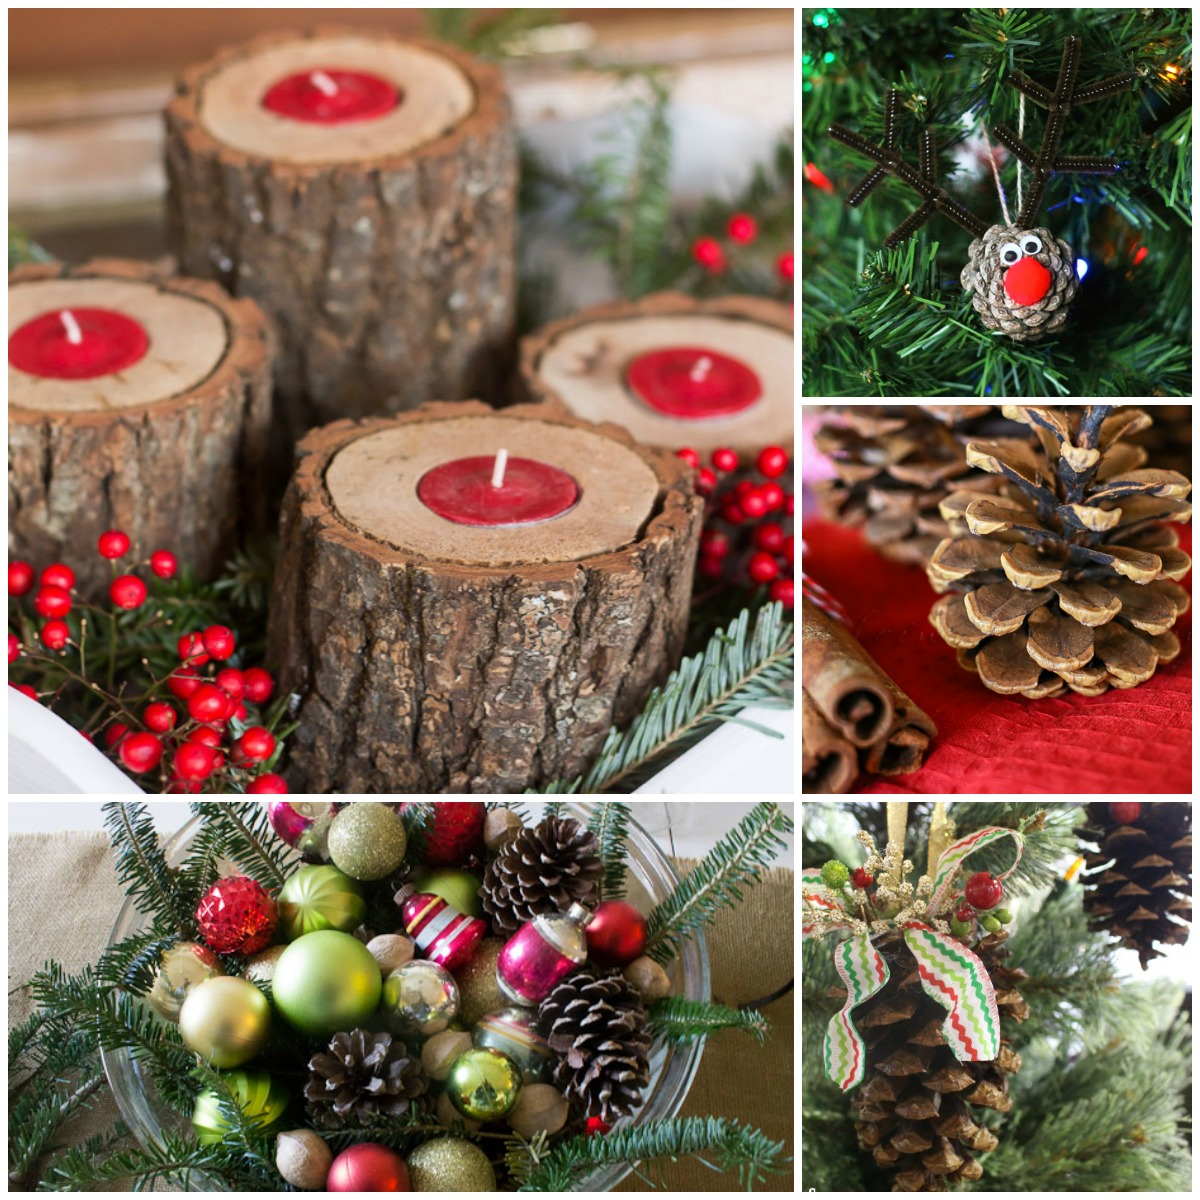 wait free christmas decorations yes please love these ideas for free natural - Free Christmas Decorations